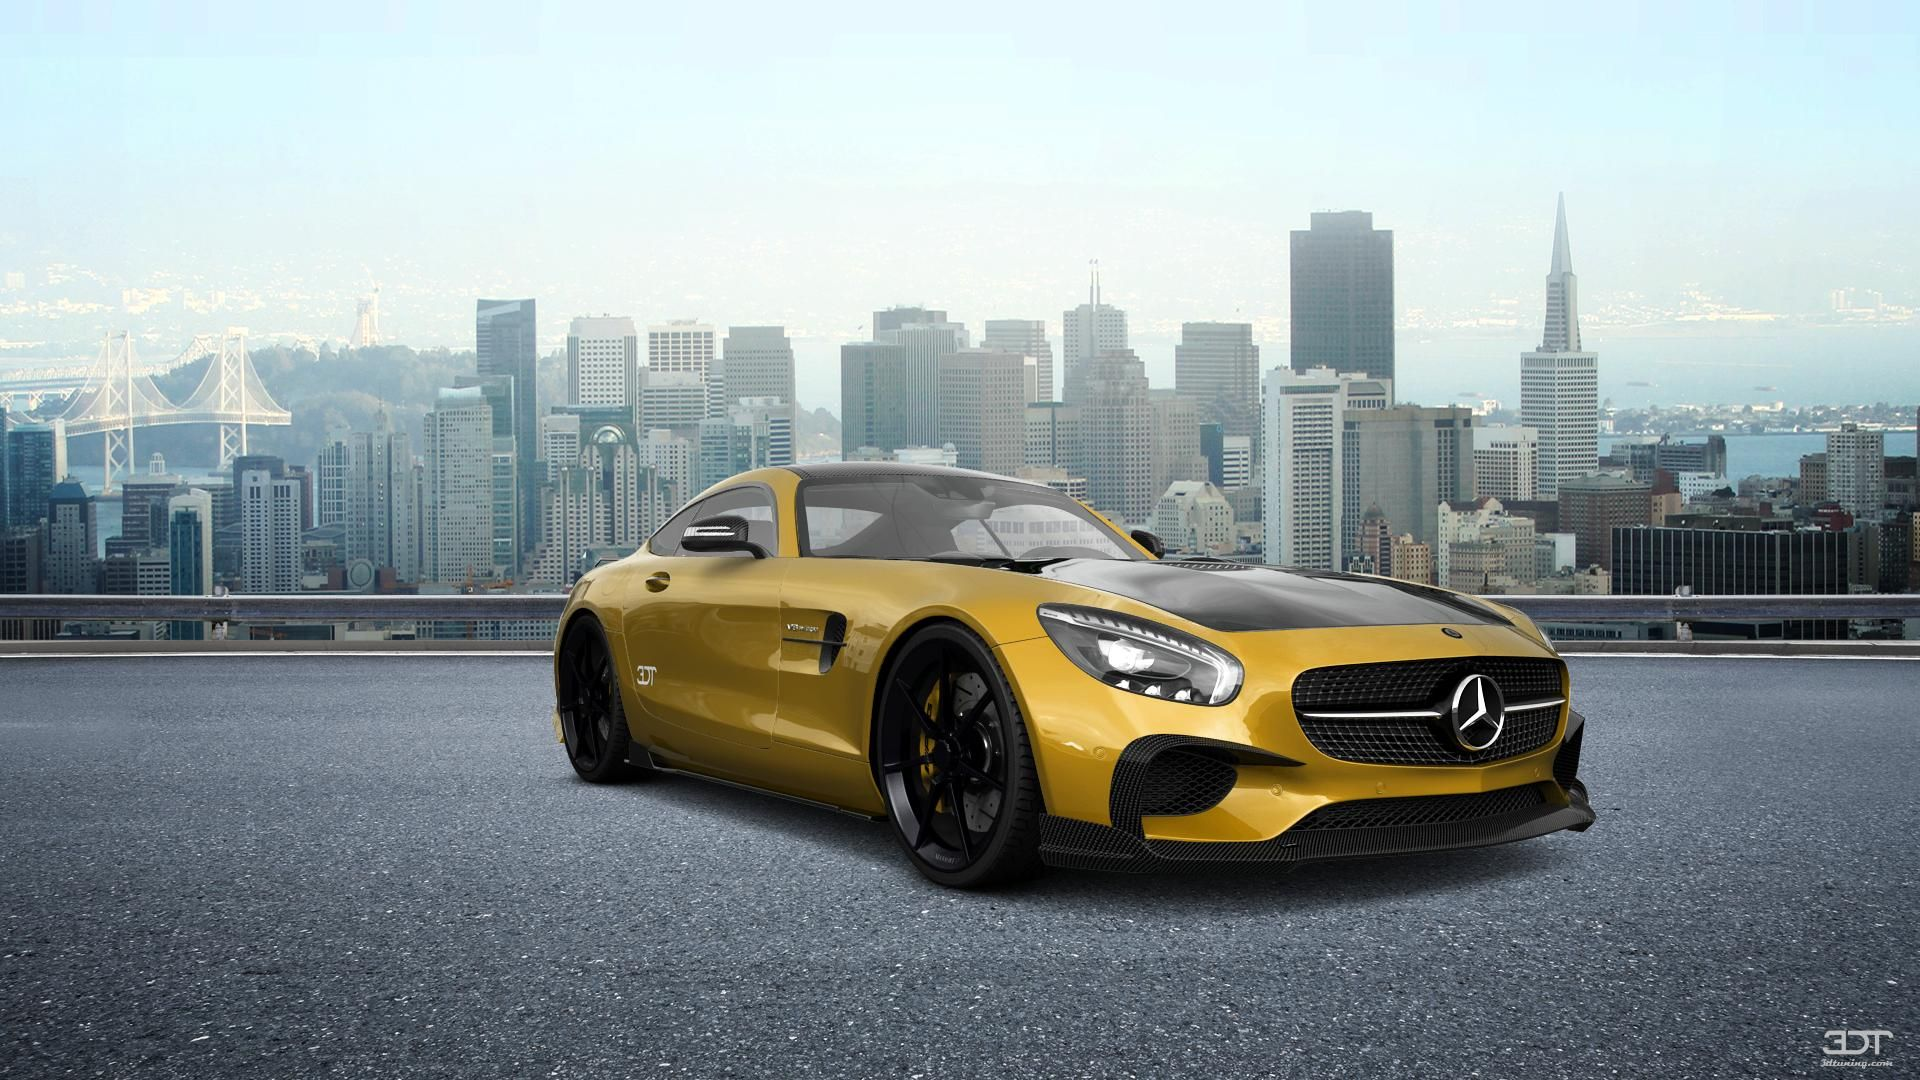 Checkout my tuning Mercedes AMGGT 2016 at 3DTuning 3dtuning